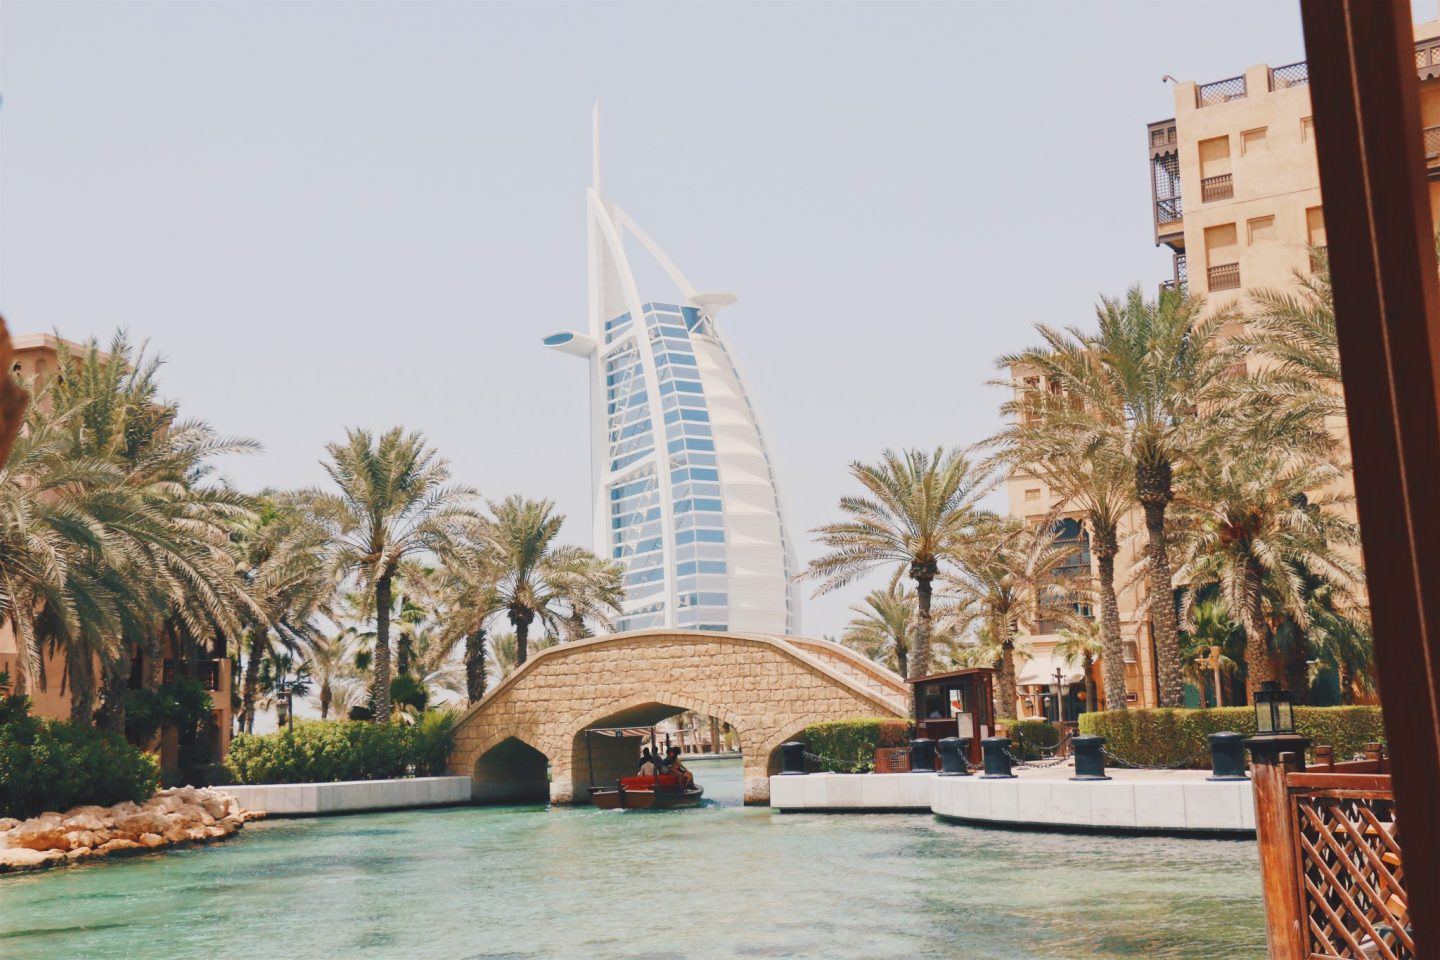 Dubai in summer